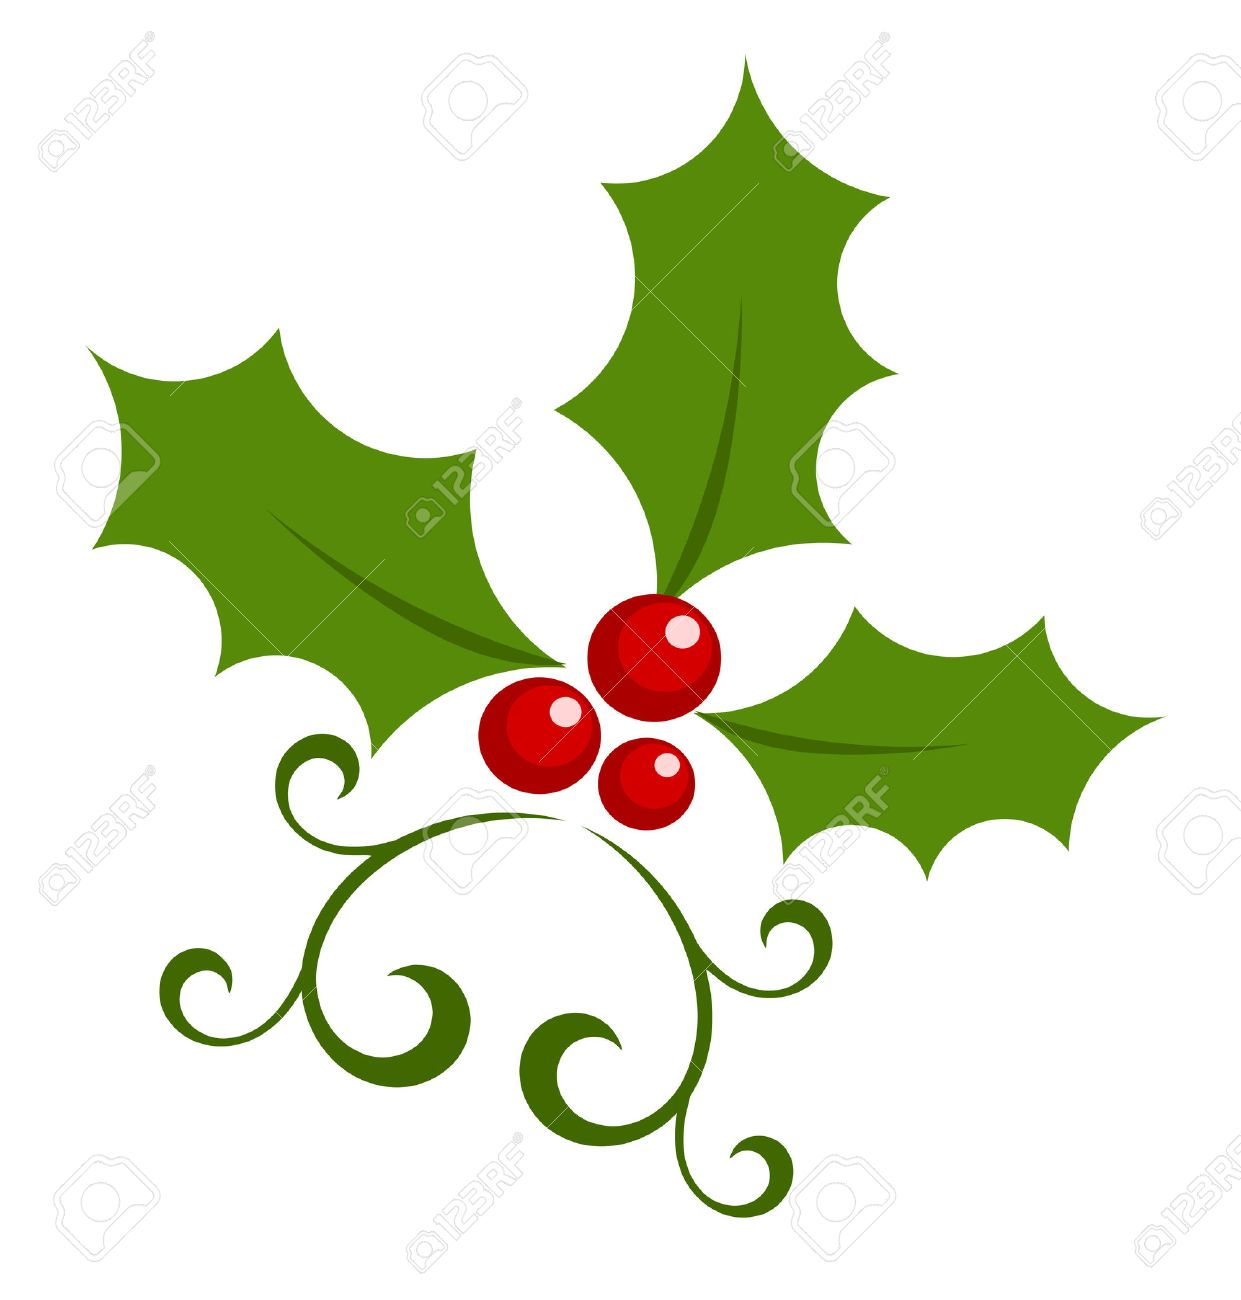 christmas holly berry symbol royalty free cliparts vectors and rh 123rf com christmas holly berry clipart holly berry clipart border